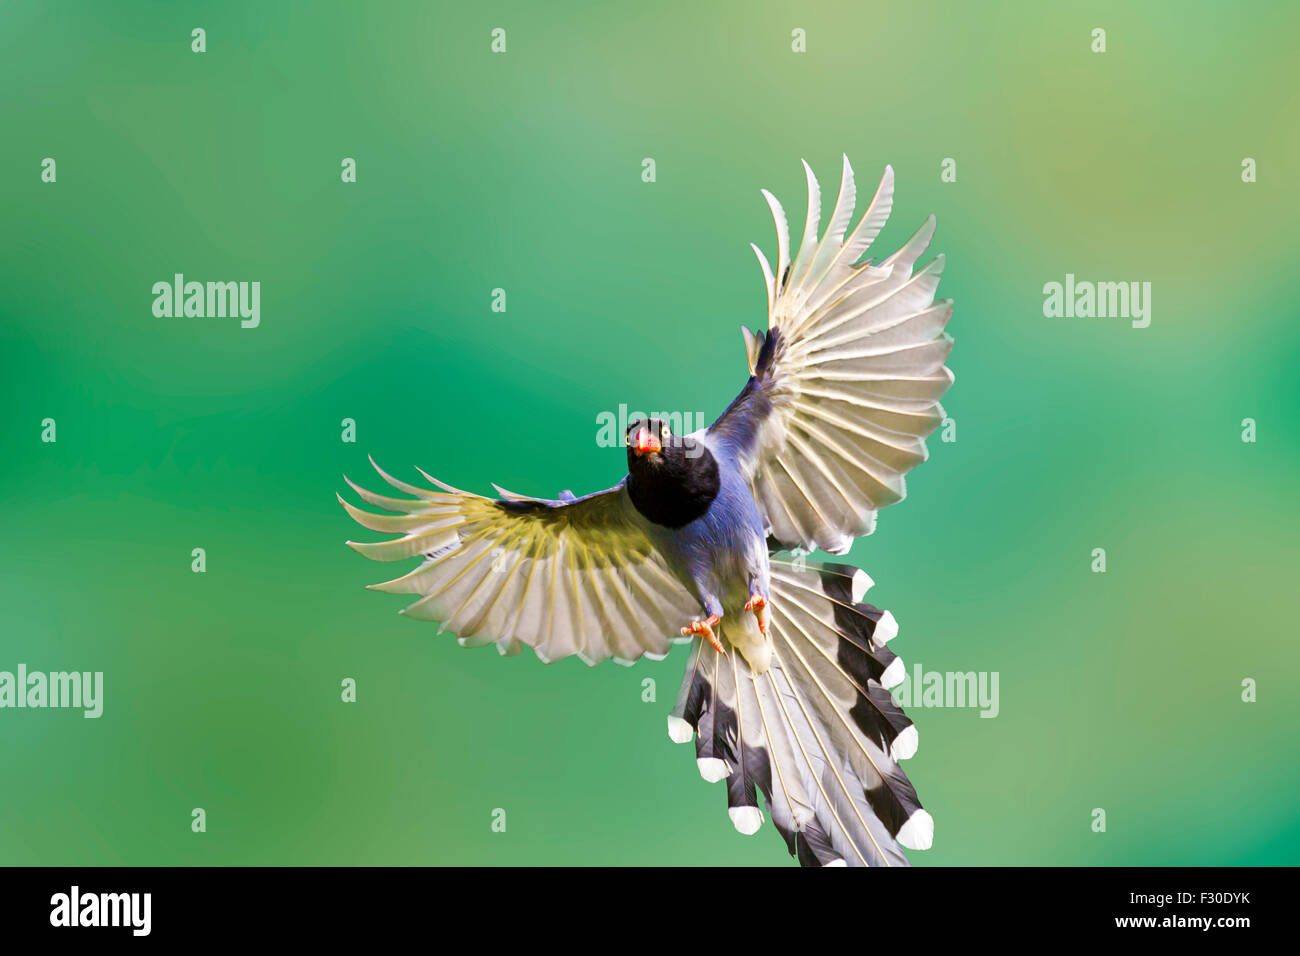 formosa blue magpie in flight against pure background - Stock Image